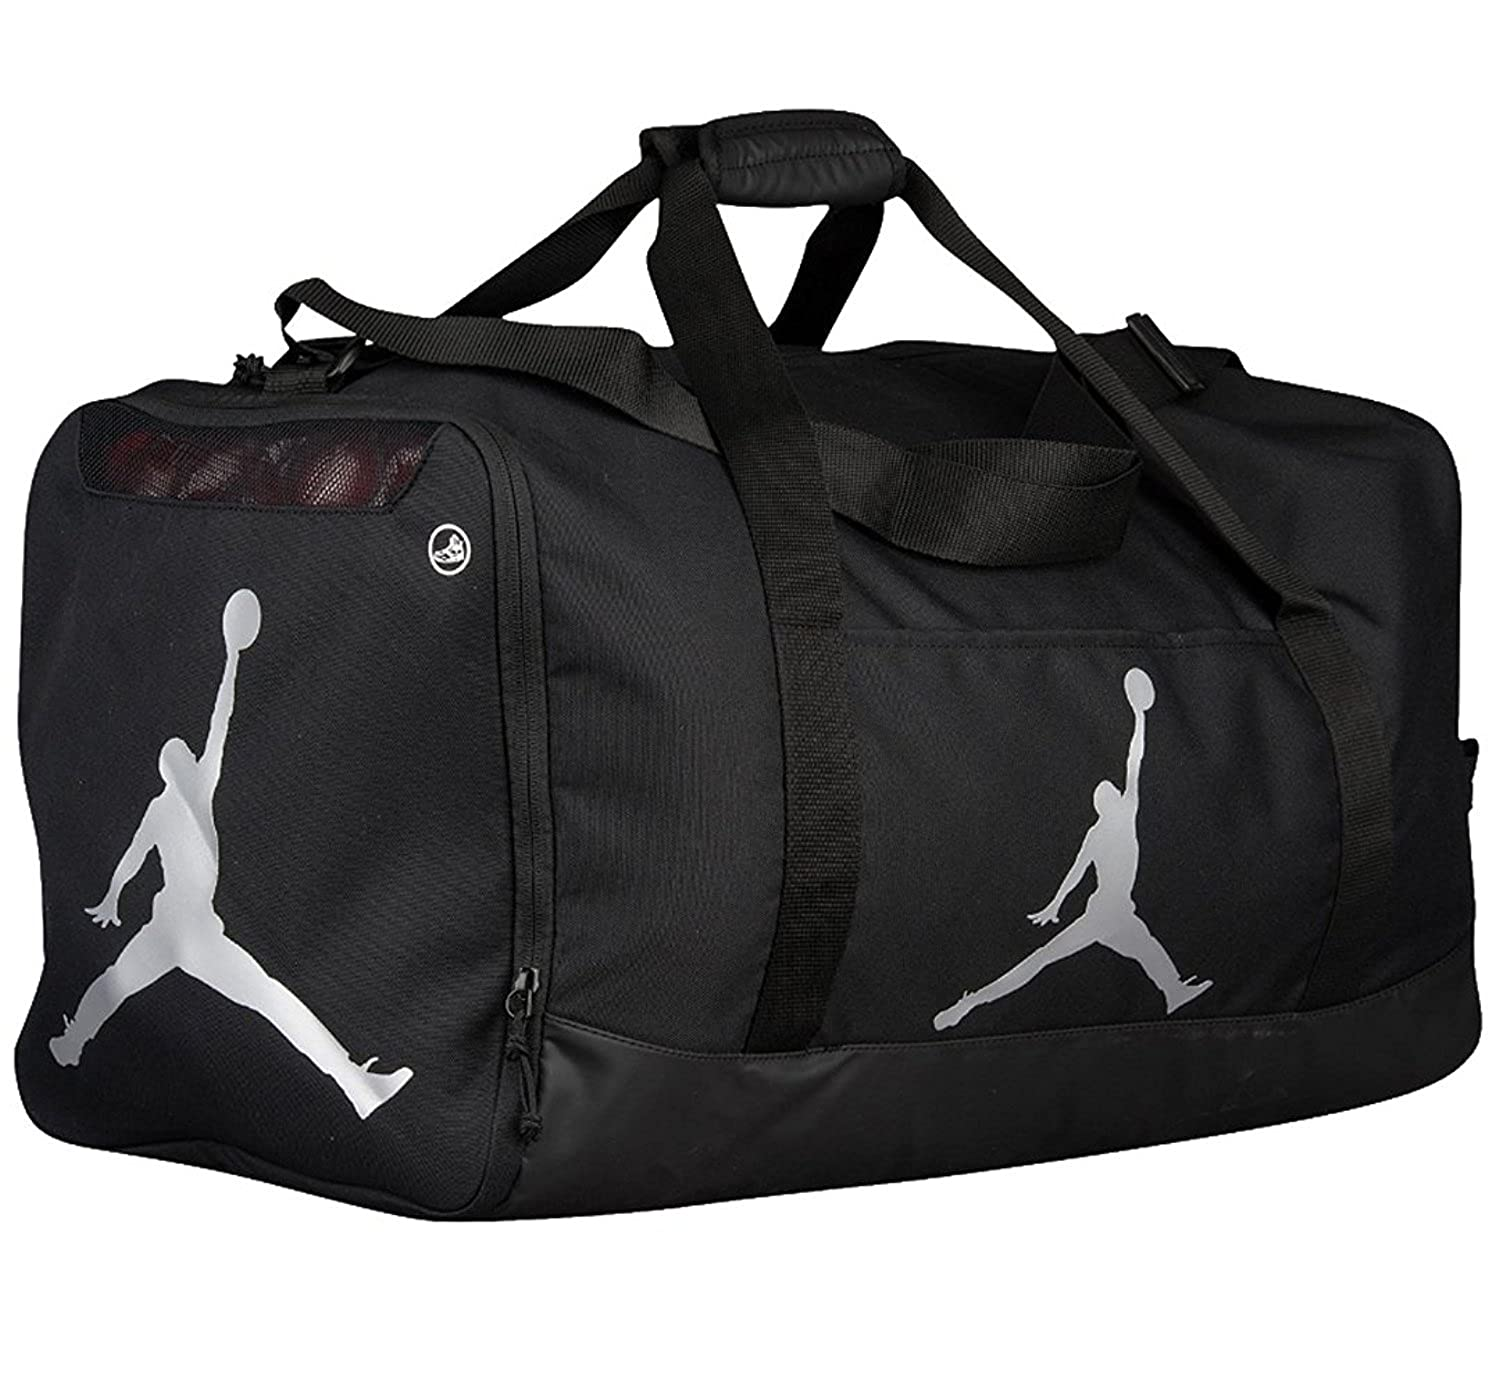 Amazon.com: Nike Air Jordan Jumpman Duffel Sports Gym Bag ...